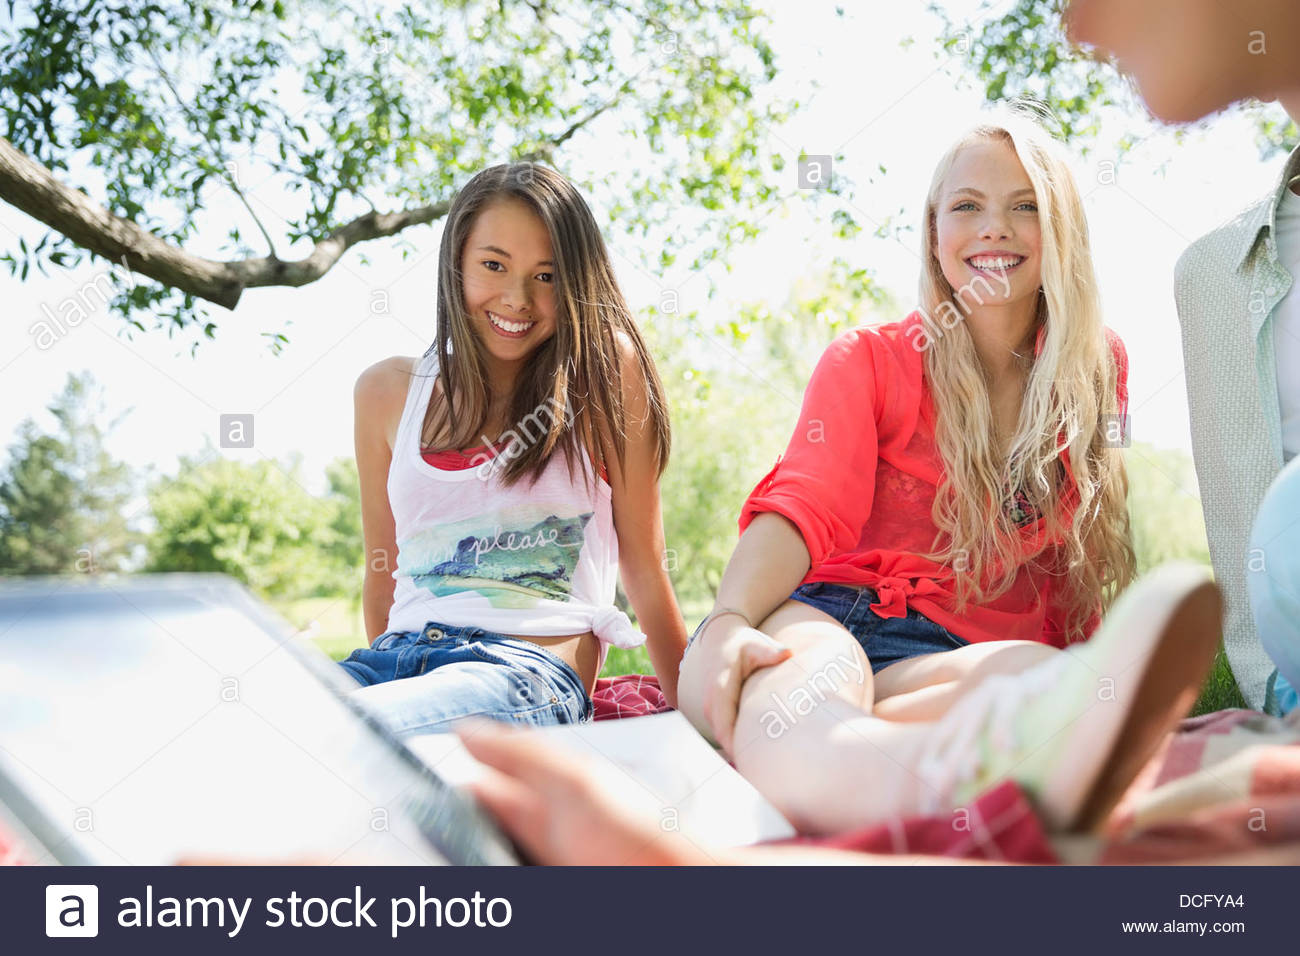 Teenagers hanging out together - Stock Image